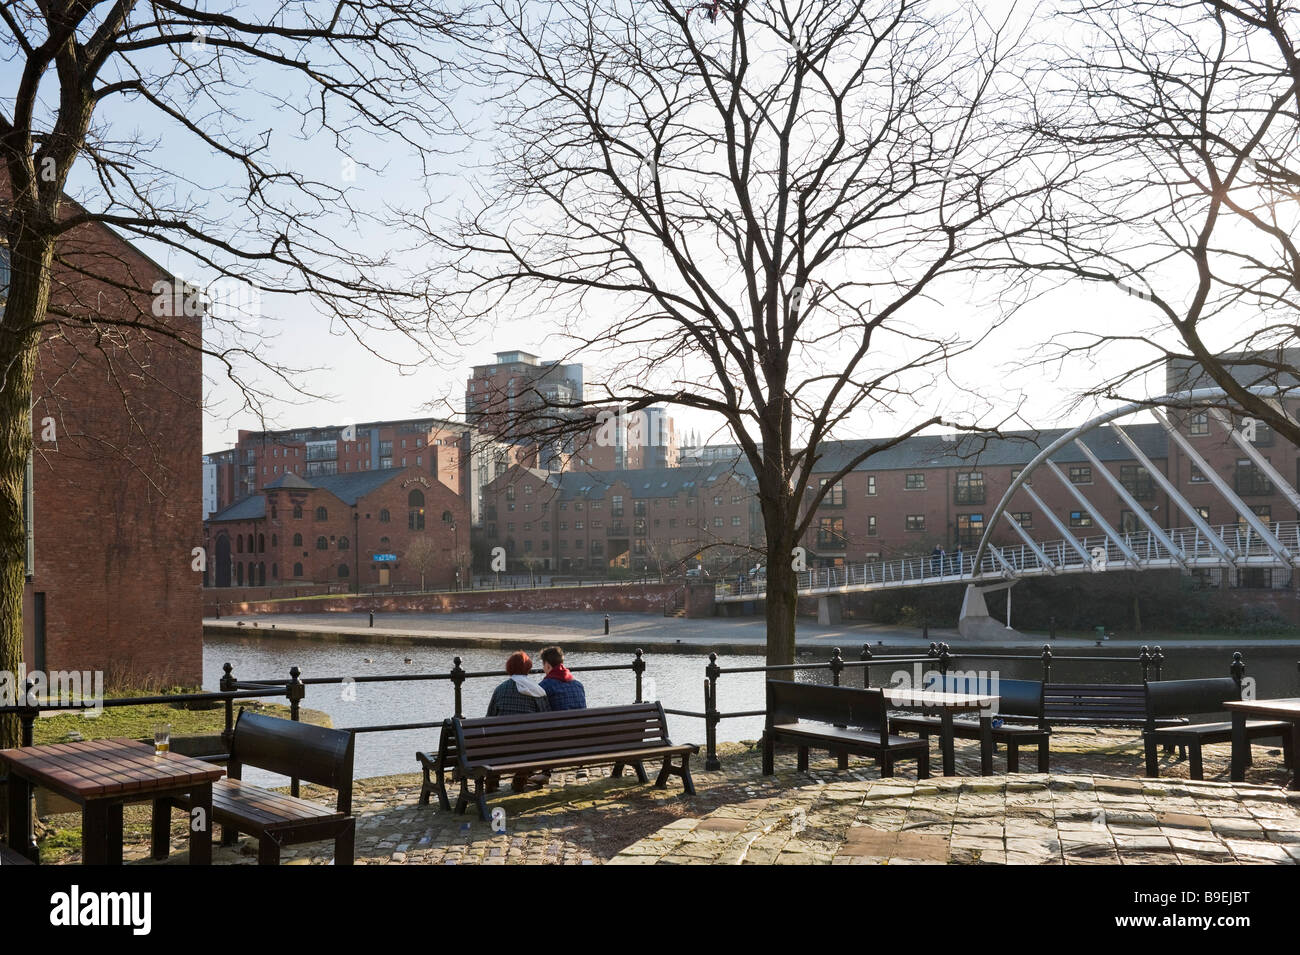 Apartments in the redeveloped canalside area of Castlefield, Manchester, England - Stock Image